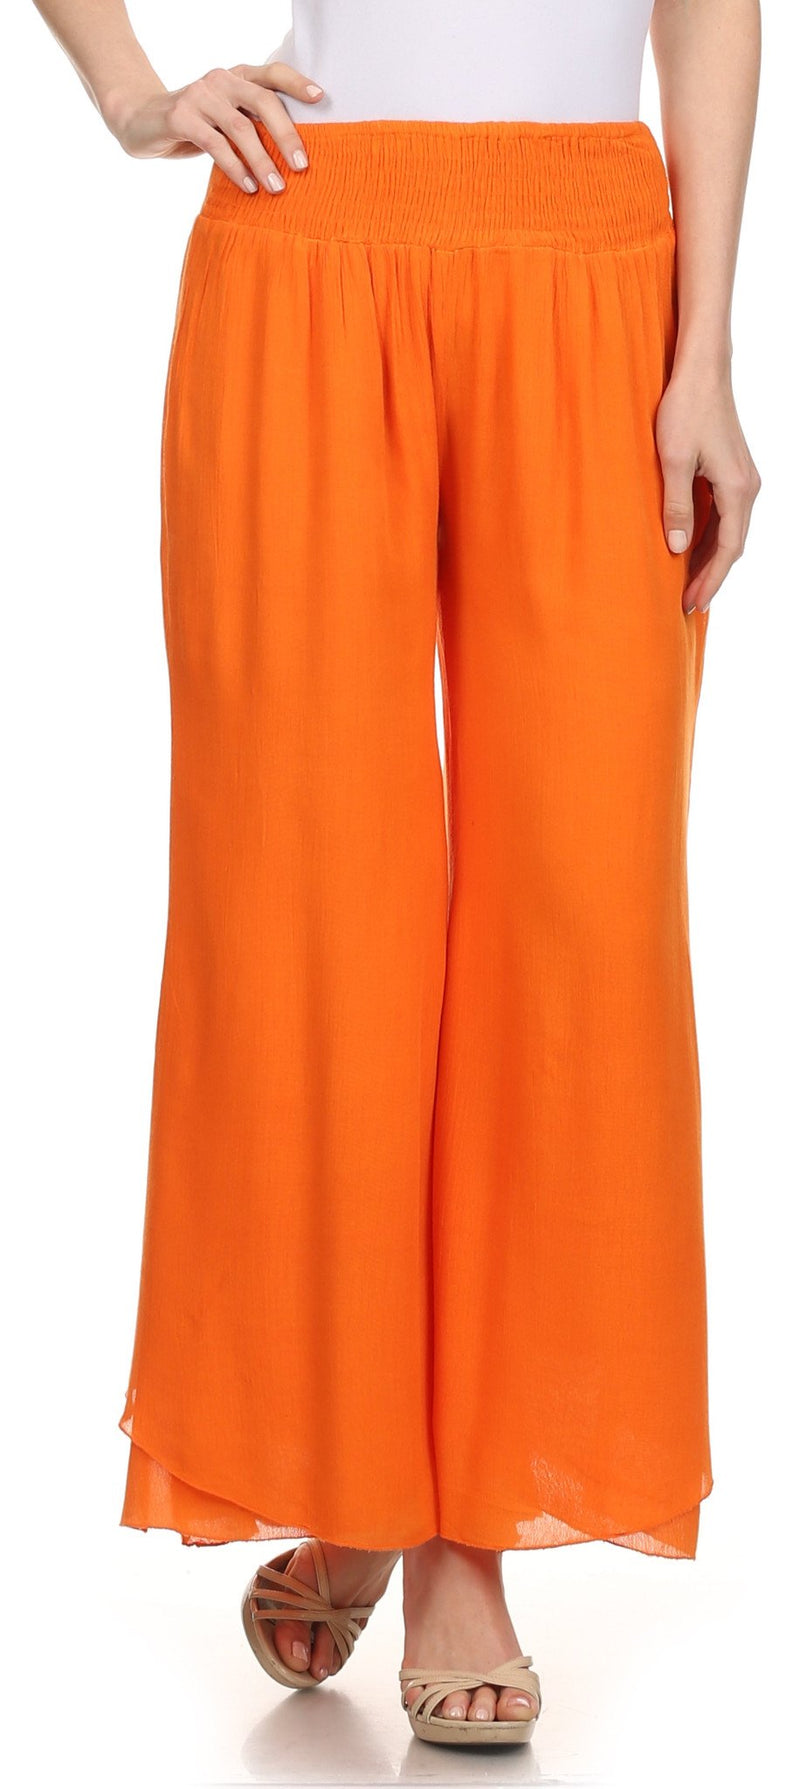 Sakkas Blaire Classic Flare Wide Leg Palazzo Beach Pant